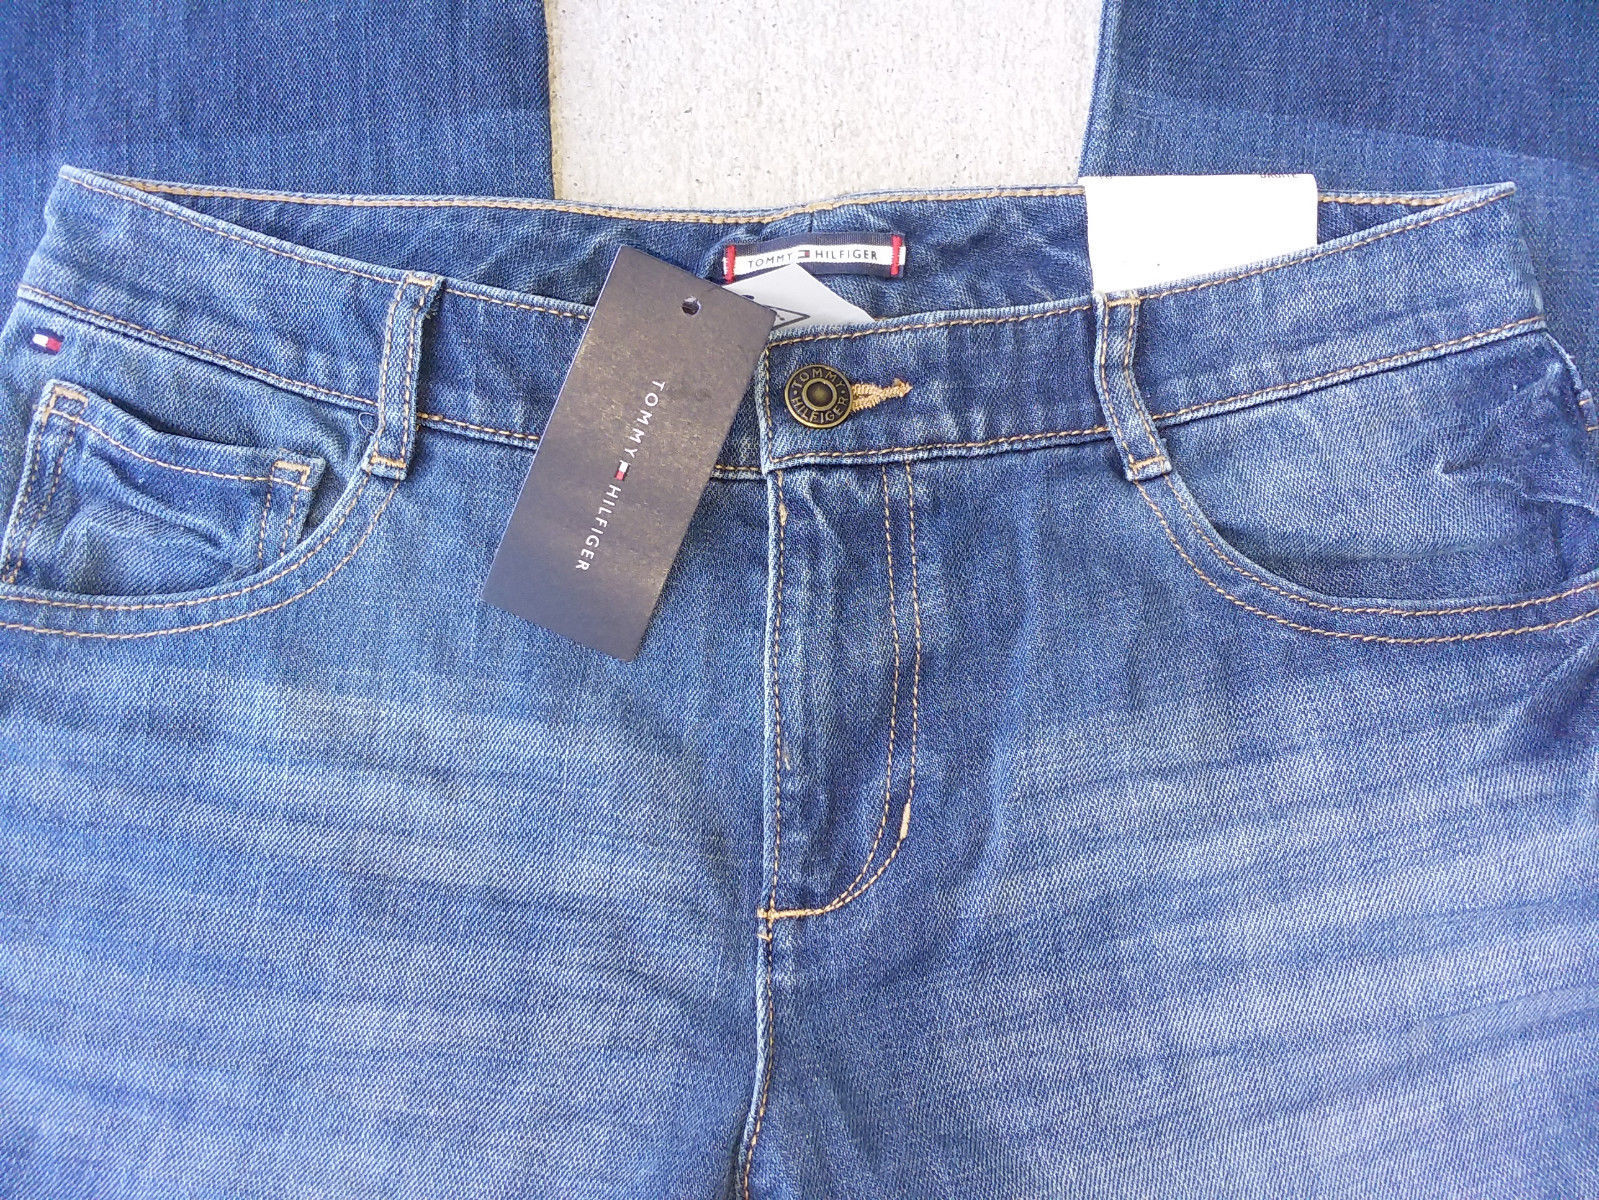 Tommy Hilfiger Girl's Below the Waist Jeans, 16 image 3